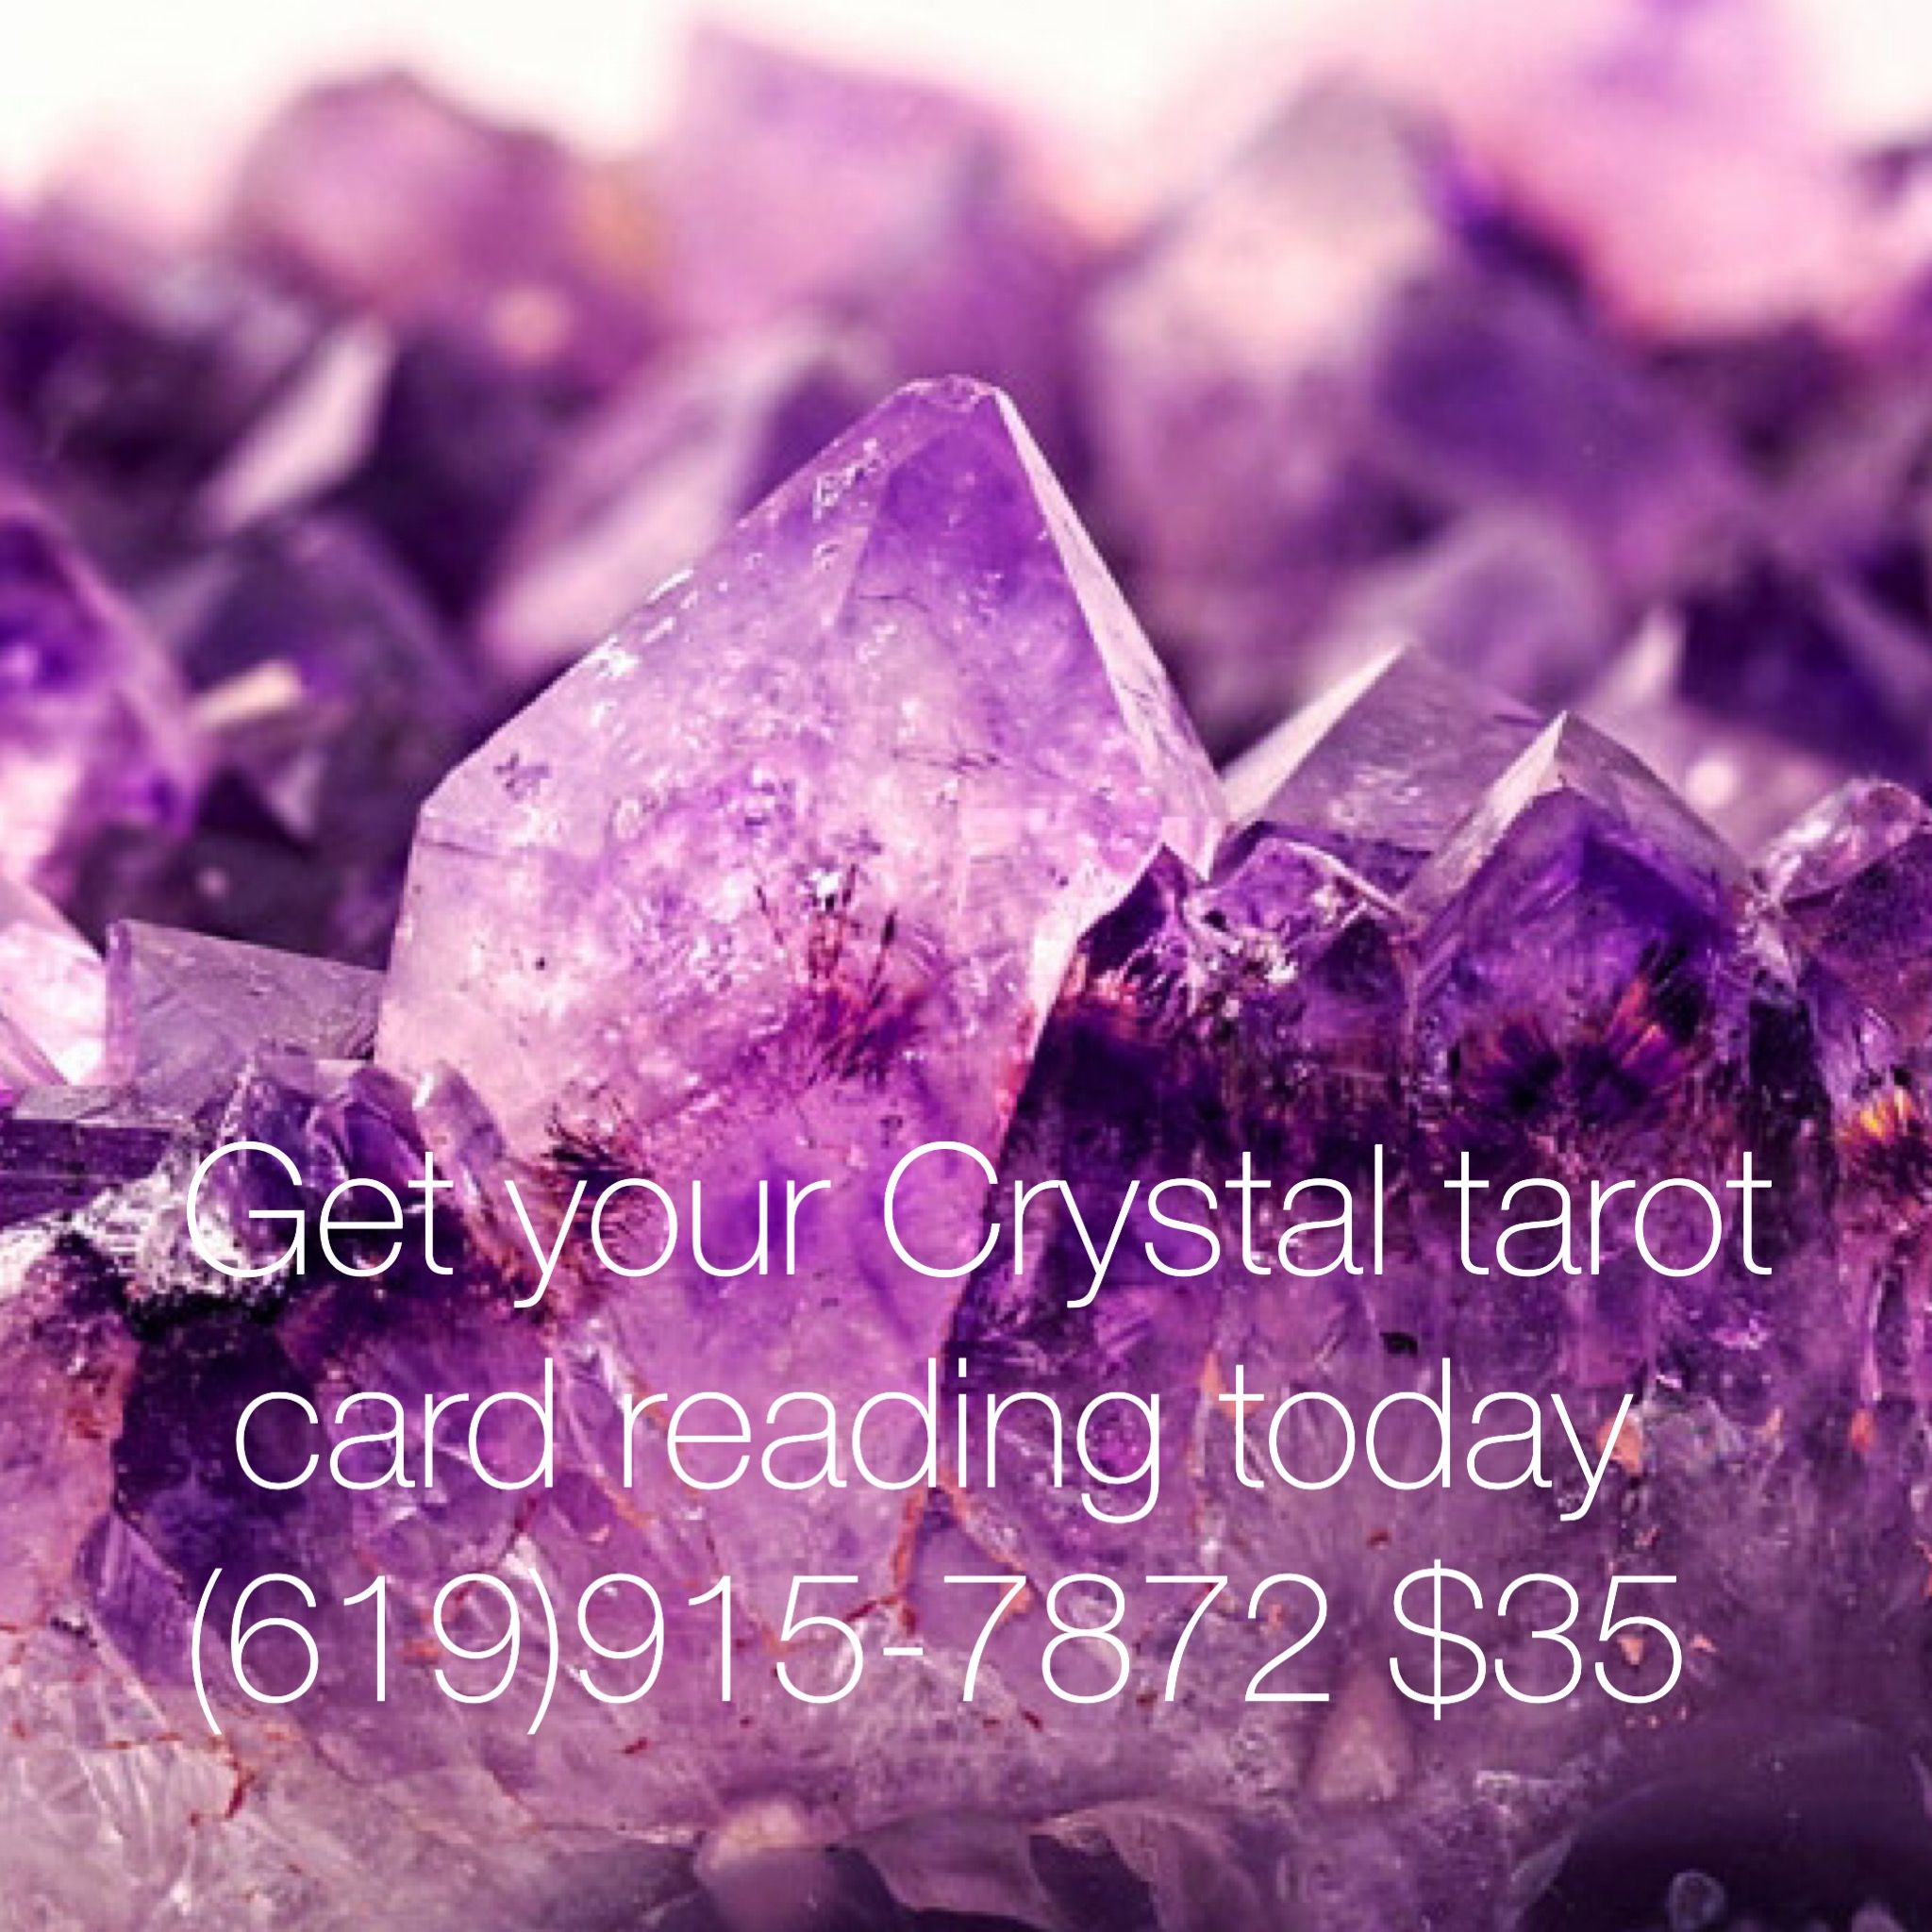 Call today for you Crystal tarot card reading at 619-915